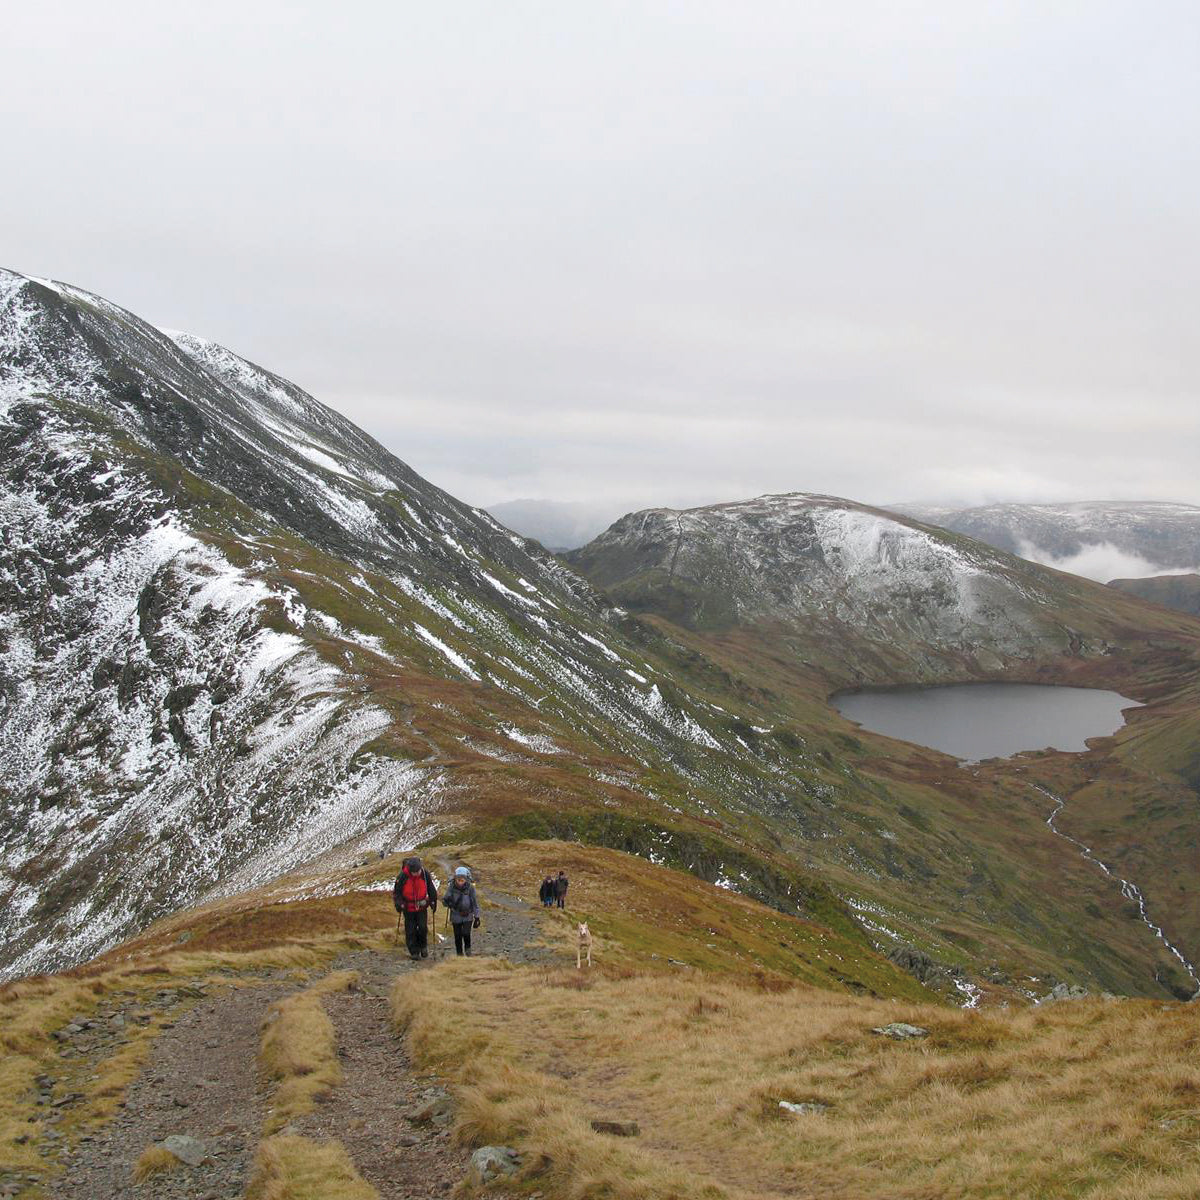 Image for article This month's walk: St Sunday Crag and Hartsop Over How